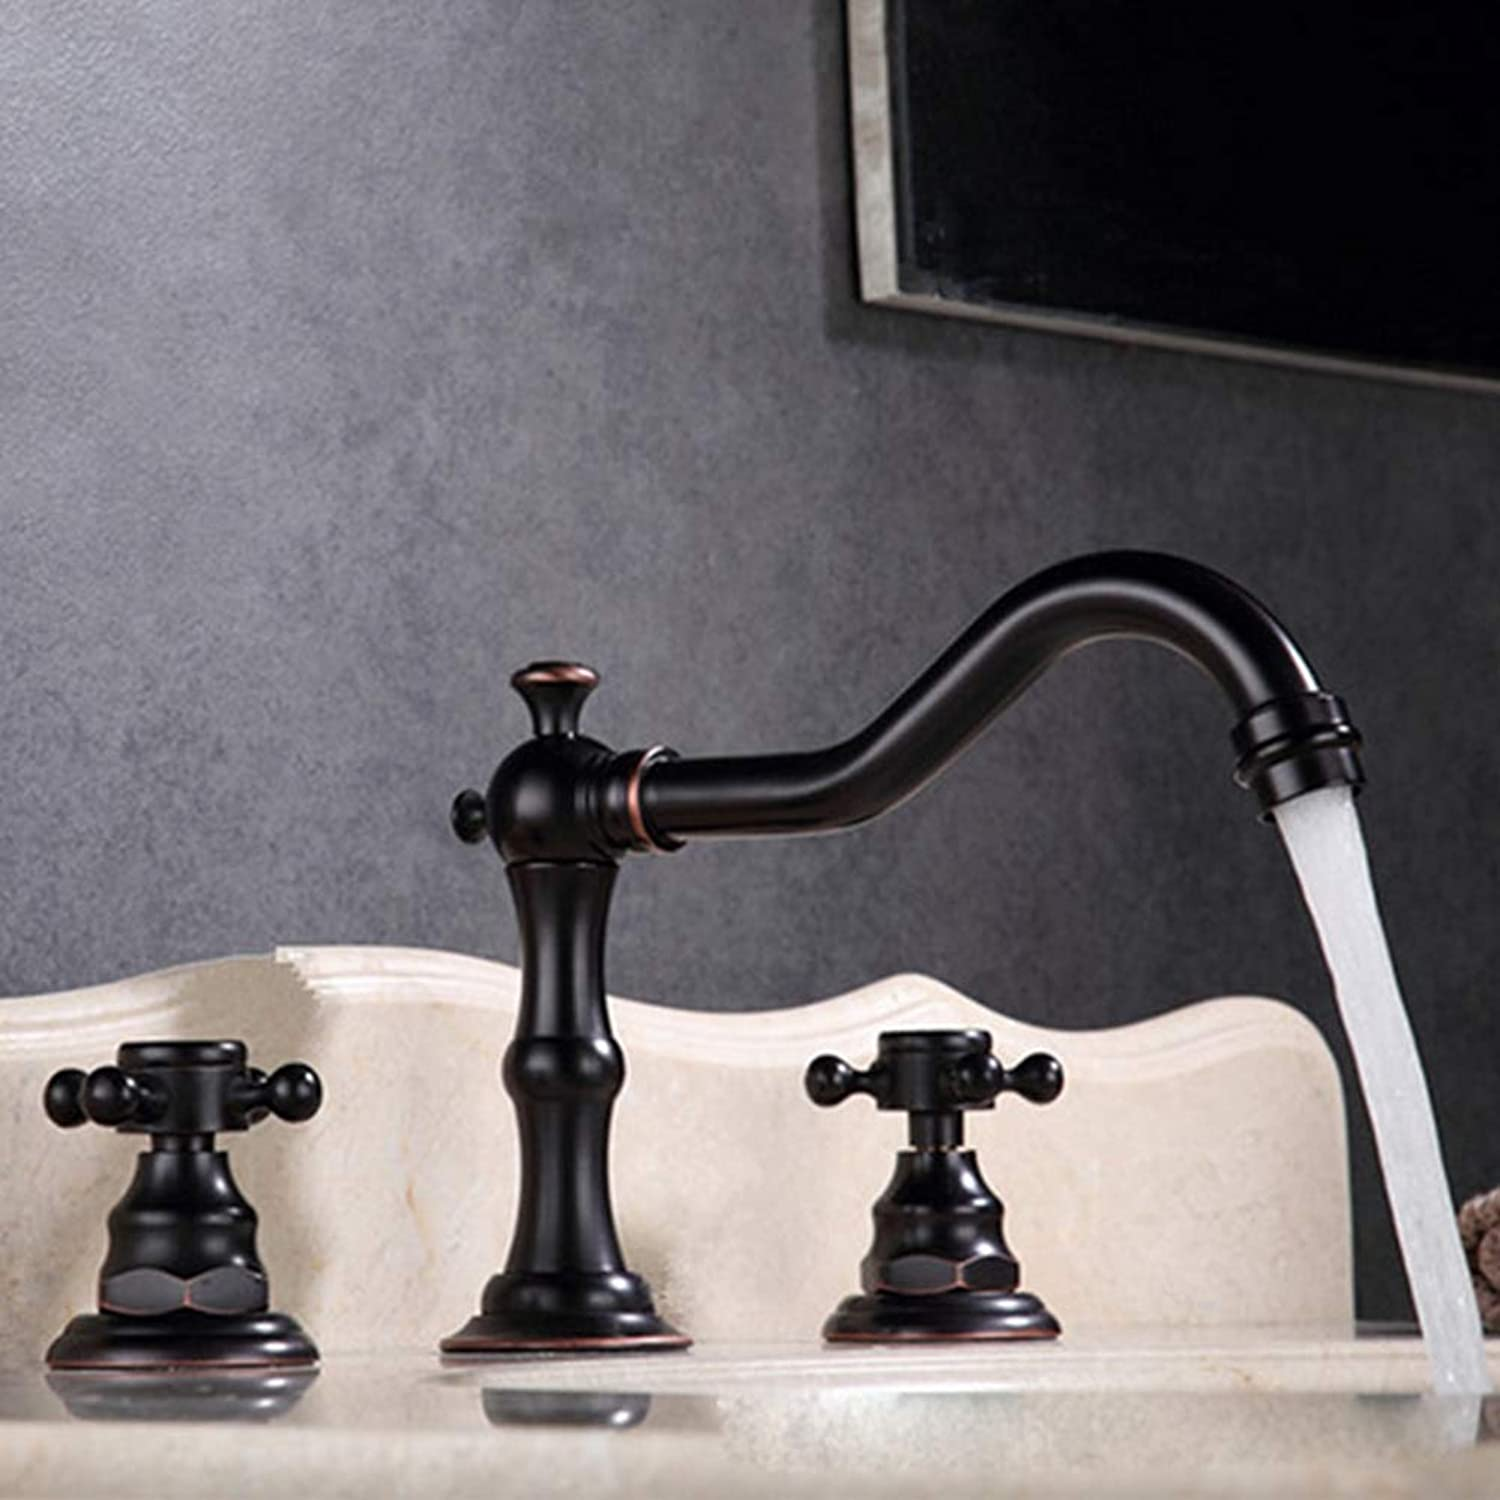 Bathroom Basin Faucet, All-Hole Split Basin Mixer, Hot and Cold Water